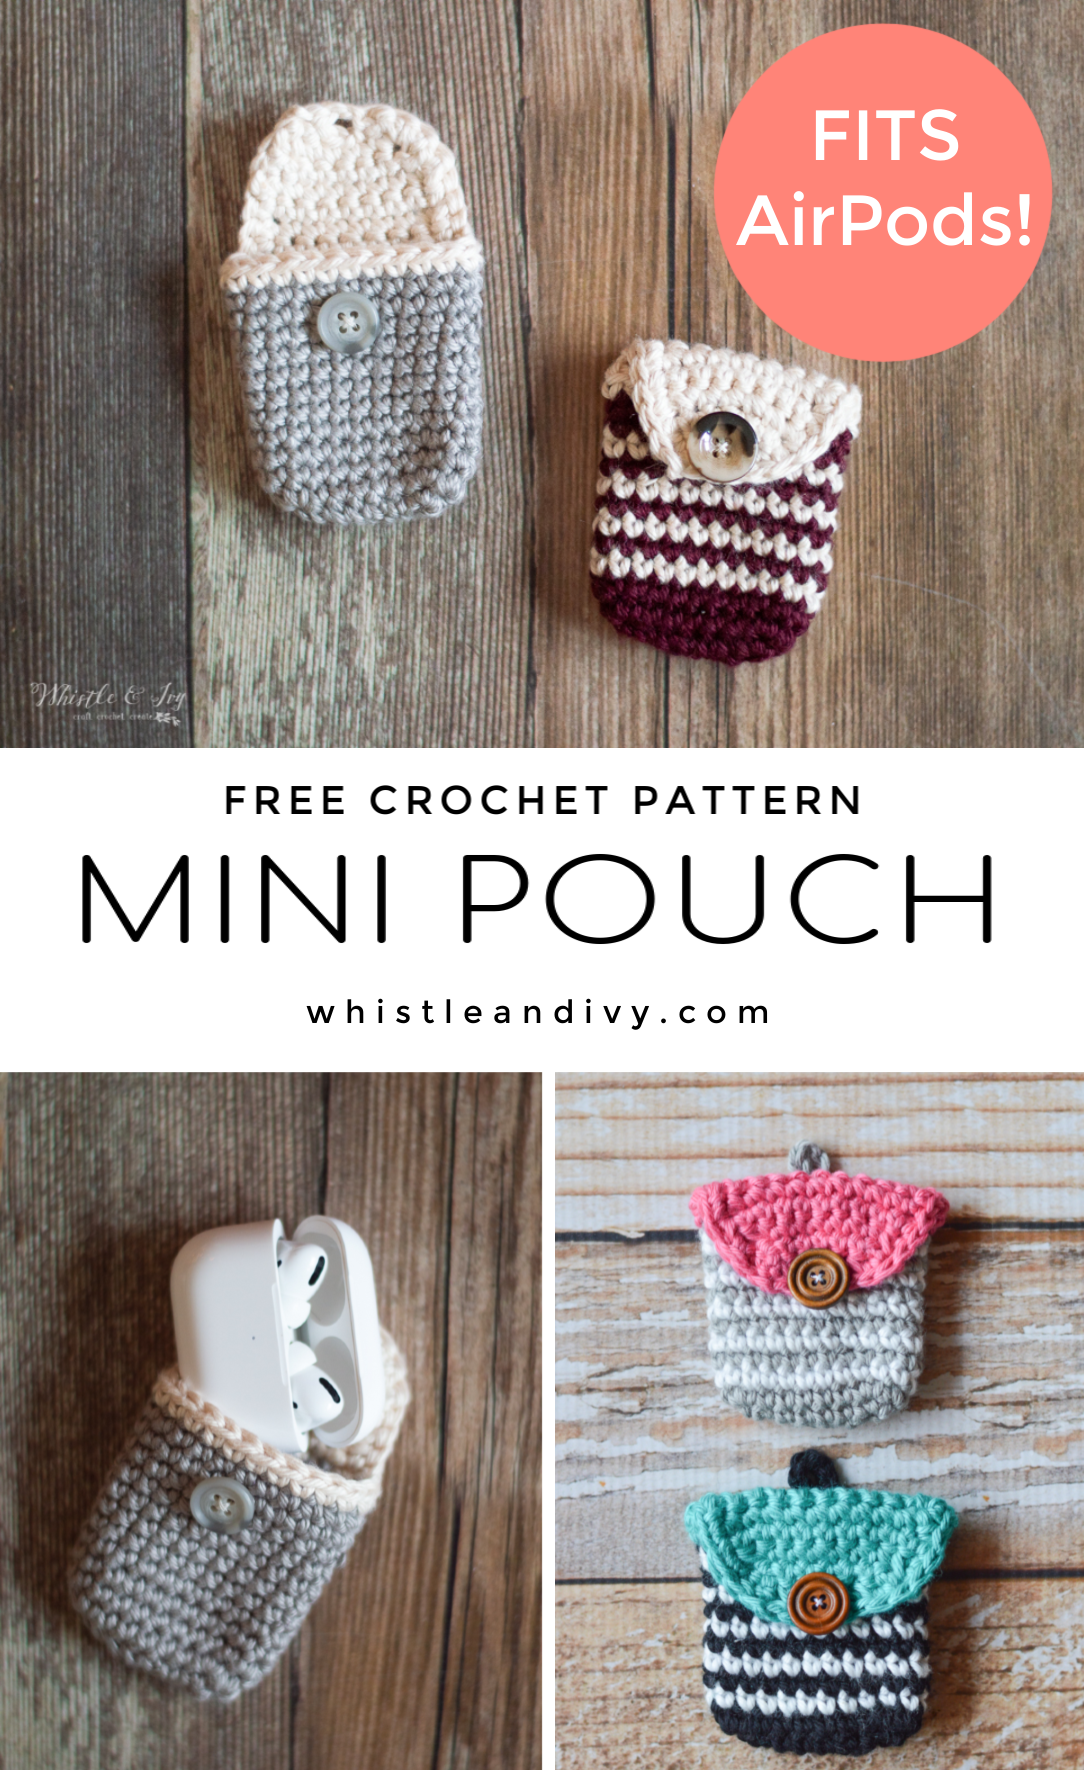 free crochet pattern crochet coin purse crochet AirPods pouch